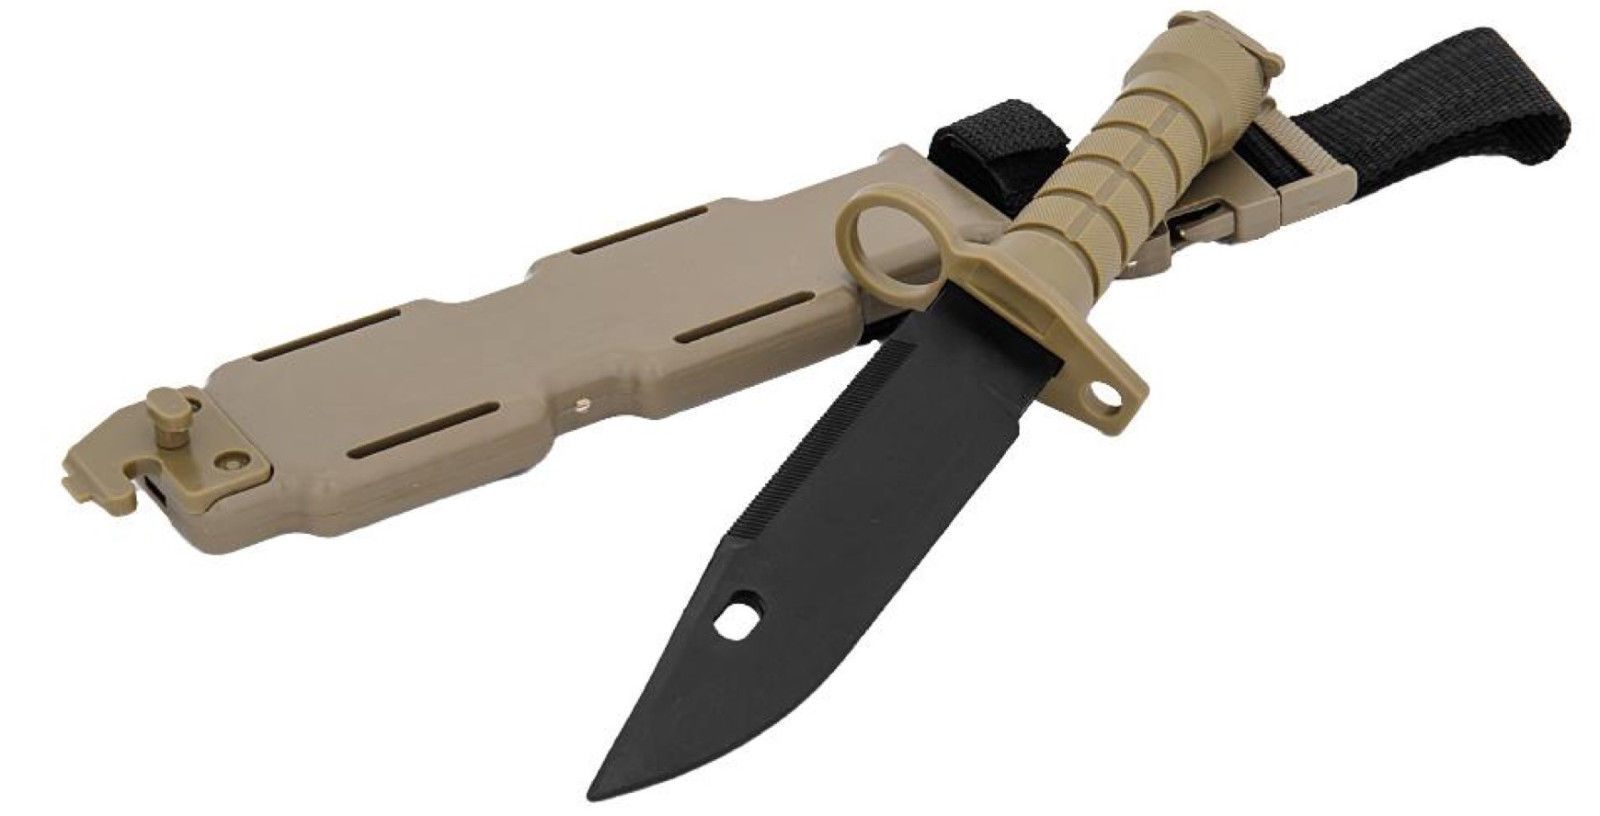 CA-07T: Lancer Tactical Airosft M9 Rubber Bayonet for M4/M16